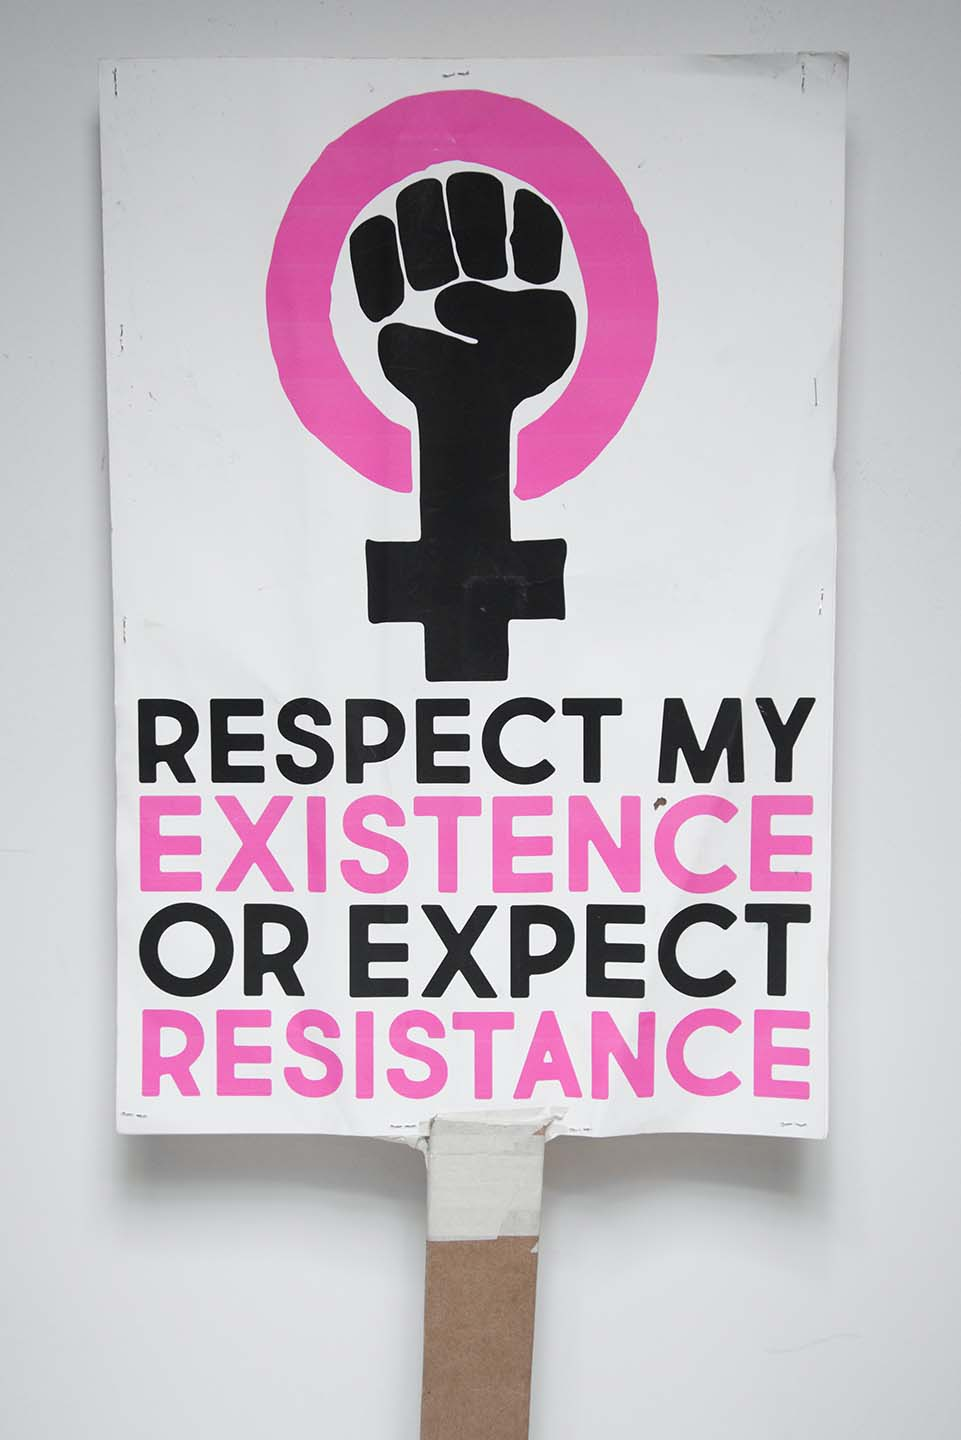 Respect My Existence or Expect Resistance